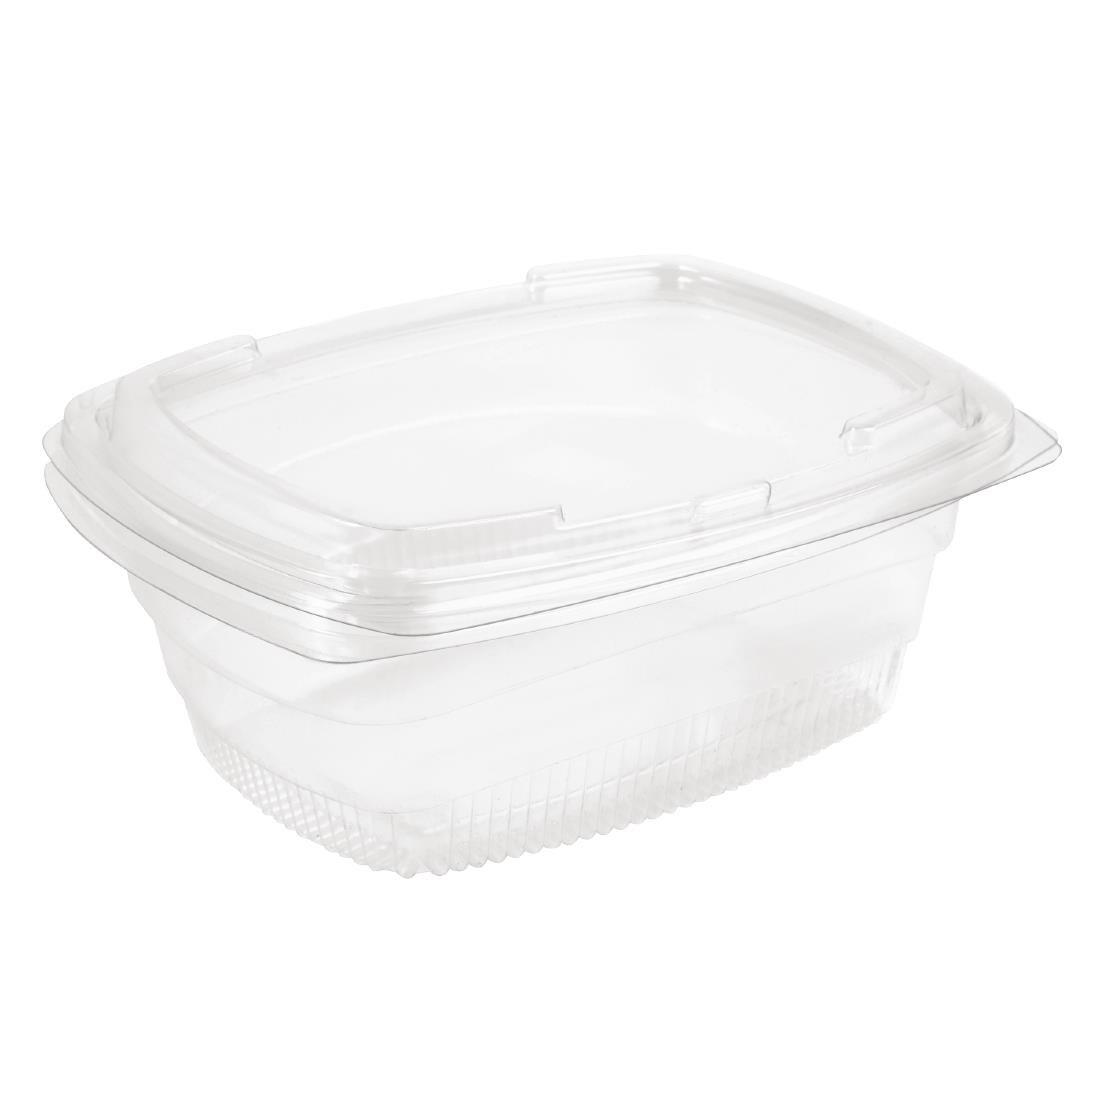 Faerch Fresco Recyclable Deli Containers With Lid 1000ml / 35oz